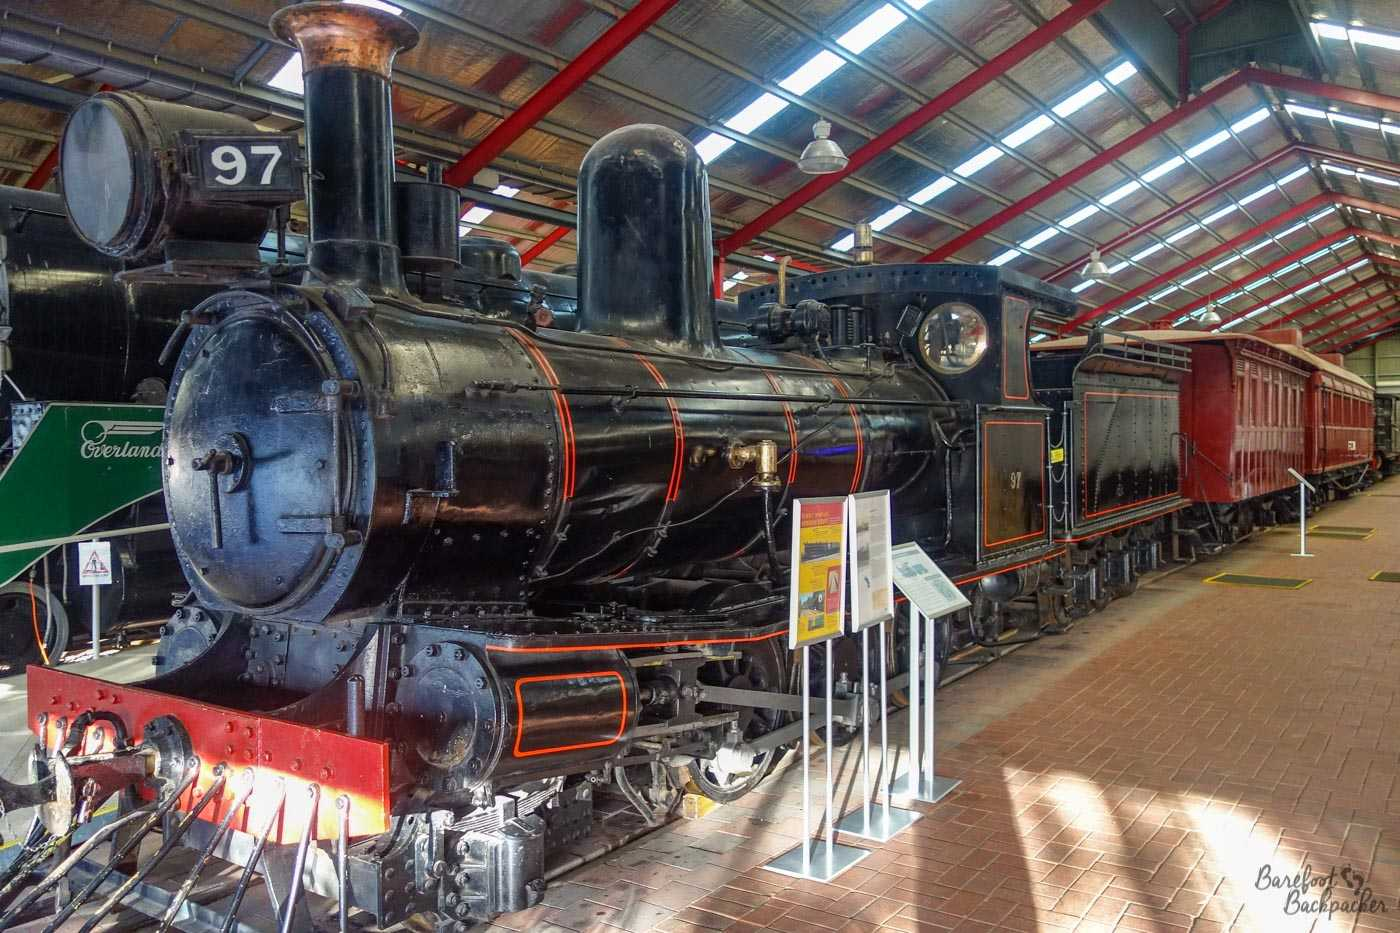 A black railway steam engine (given the number '97') in situ inside the railway museum, complete with tender, and pulling two brown old-fashioned carriages. I can't see the front wheels properly so I can't tell the configuration of the engine but I'm guessing it'd be a 4-6-0 or a 4-6-2.